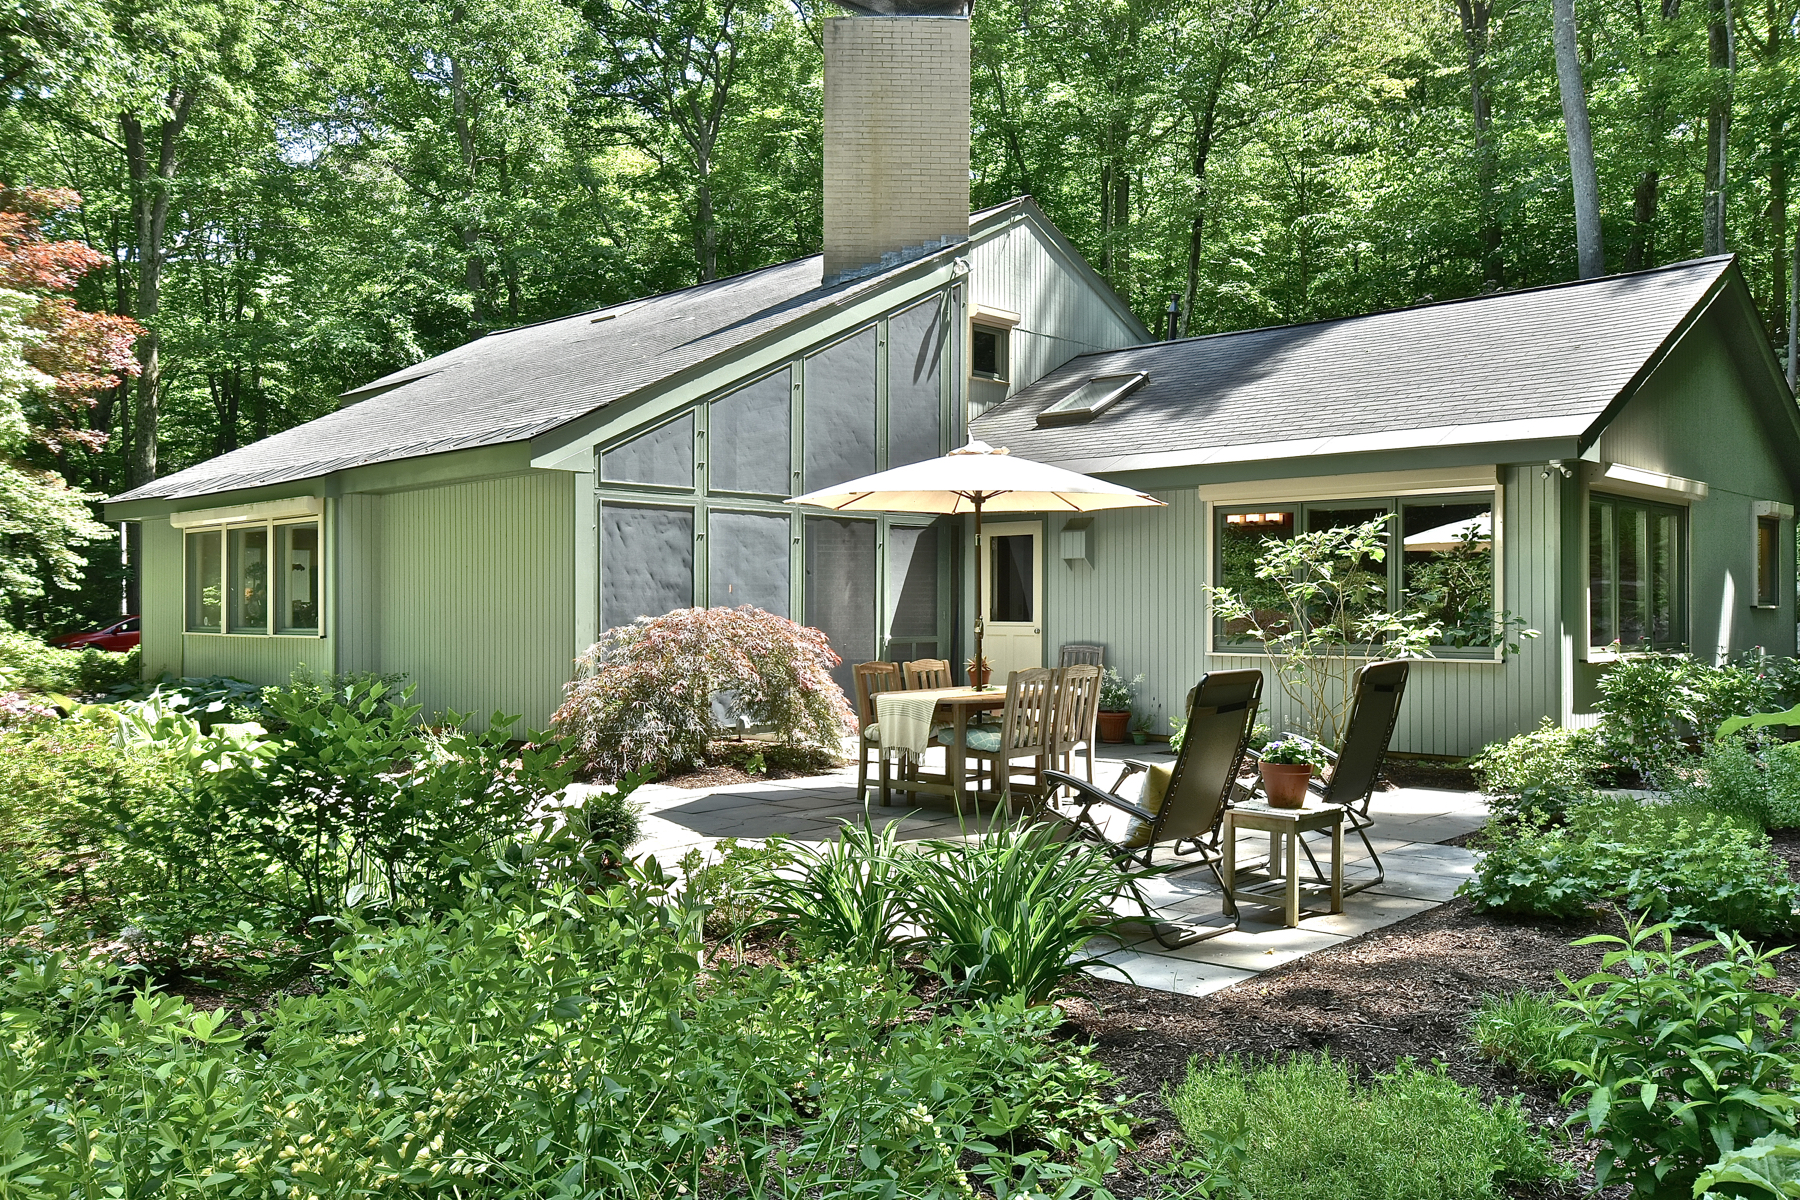 Single Family Home for Sale at Sun-Filled Contemporary 70 Book Hill Rd Deep River, Connecticut 06417 United States